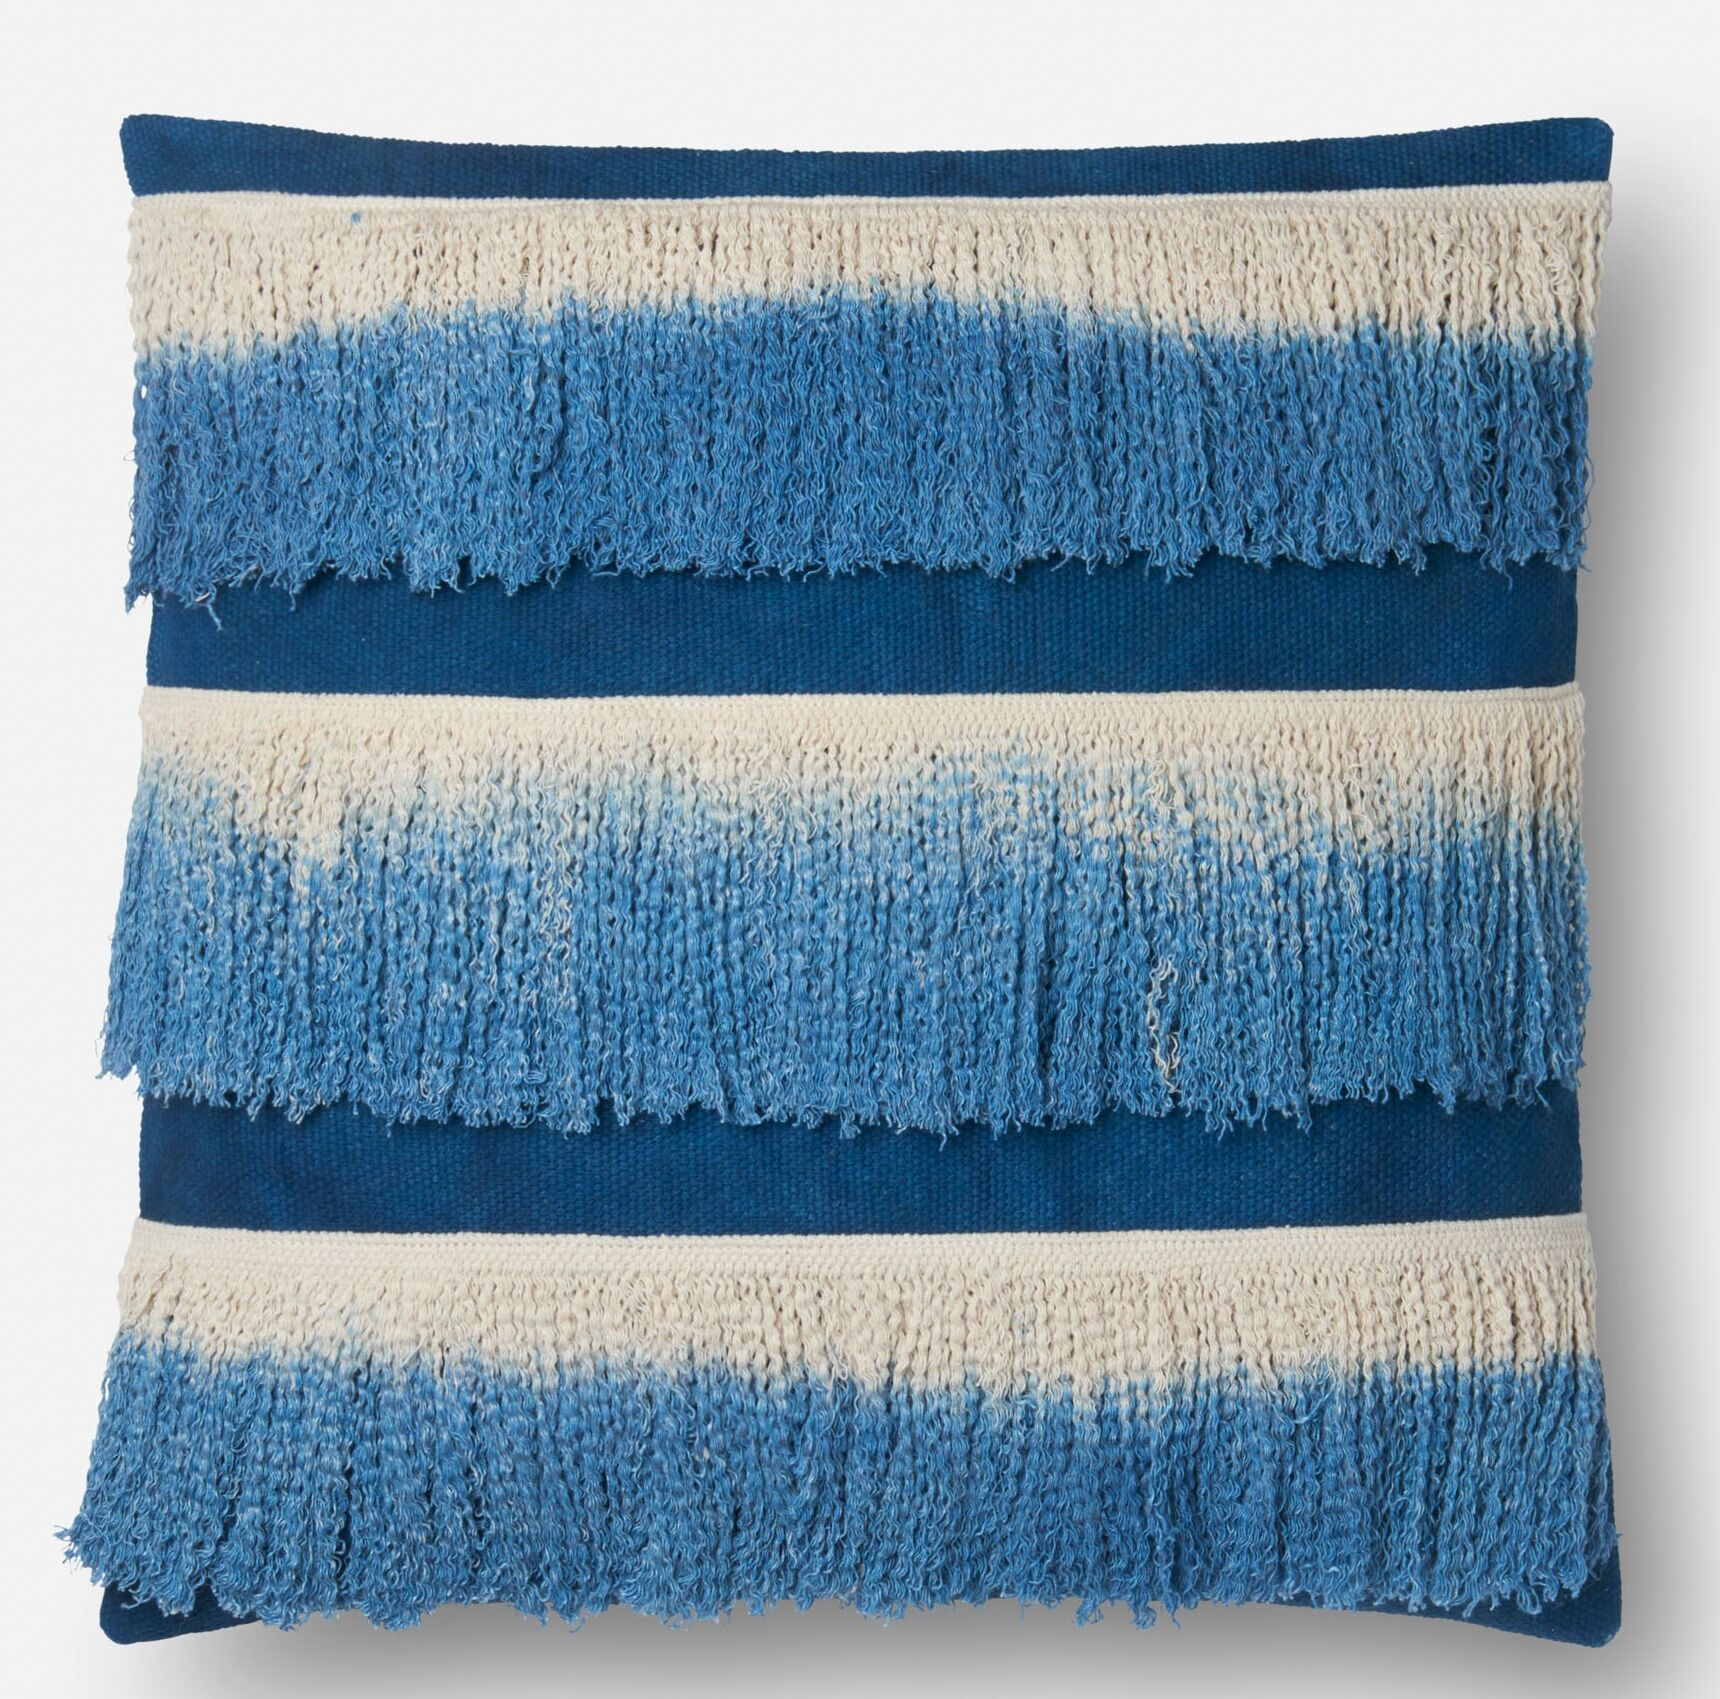 Cambra Cotton Throw Pillow Fill Material: Down/Feather, Color: Blue / Ivory, Type: Pillow